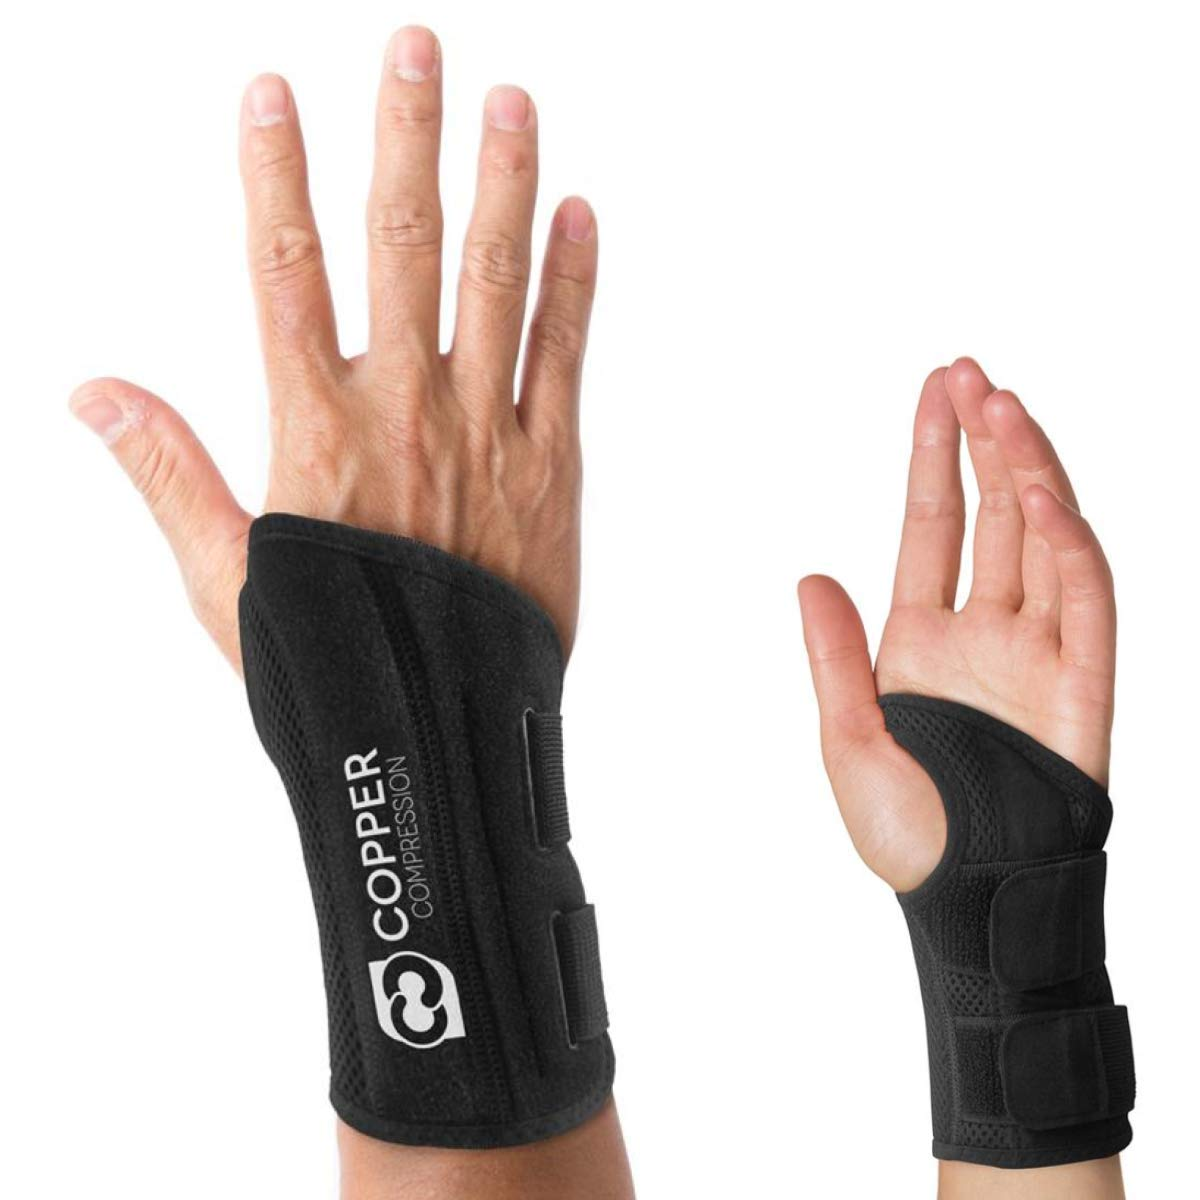 Copper Compression Wrist Brace - Guaranteed Highest Copper Content Support for Wrists, Carpal Tunnel, Arthritis, Tendonitis. Night Day Wrist Splint for Men Women Fit Right Left Hand (Right Hand S-M) by Copper Compression